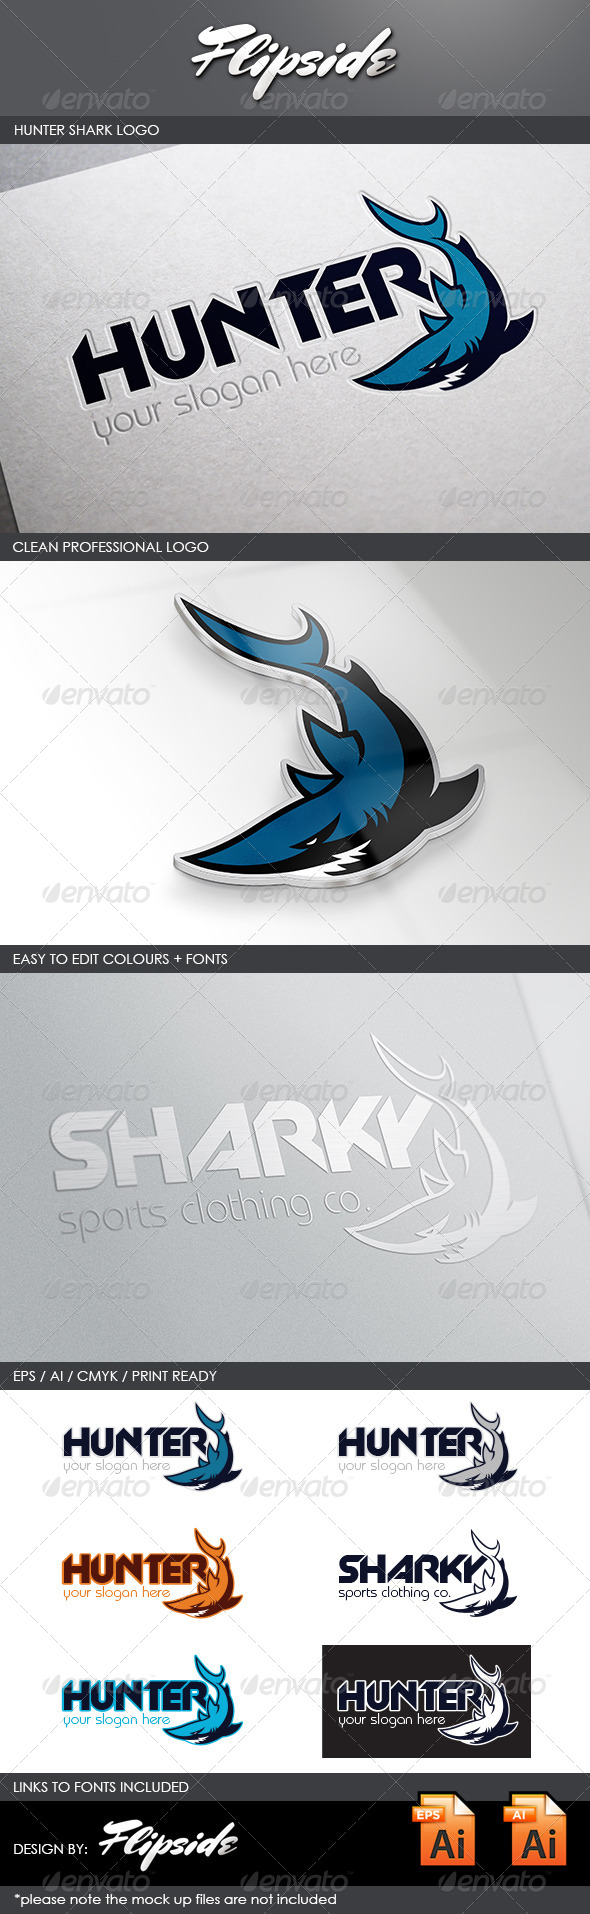 GraphicRiver Hunter Shark Logo 4551507